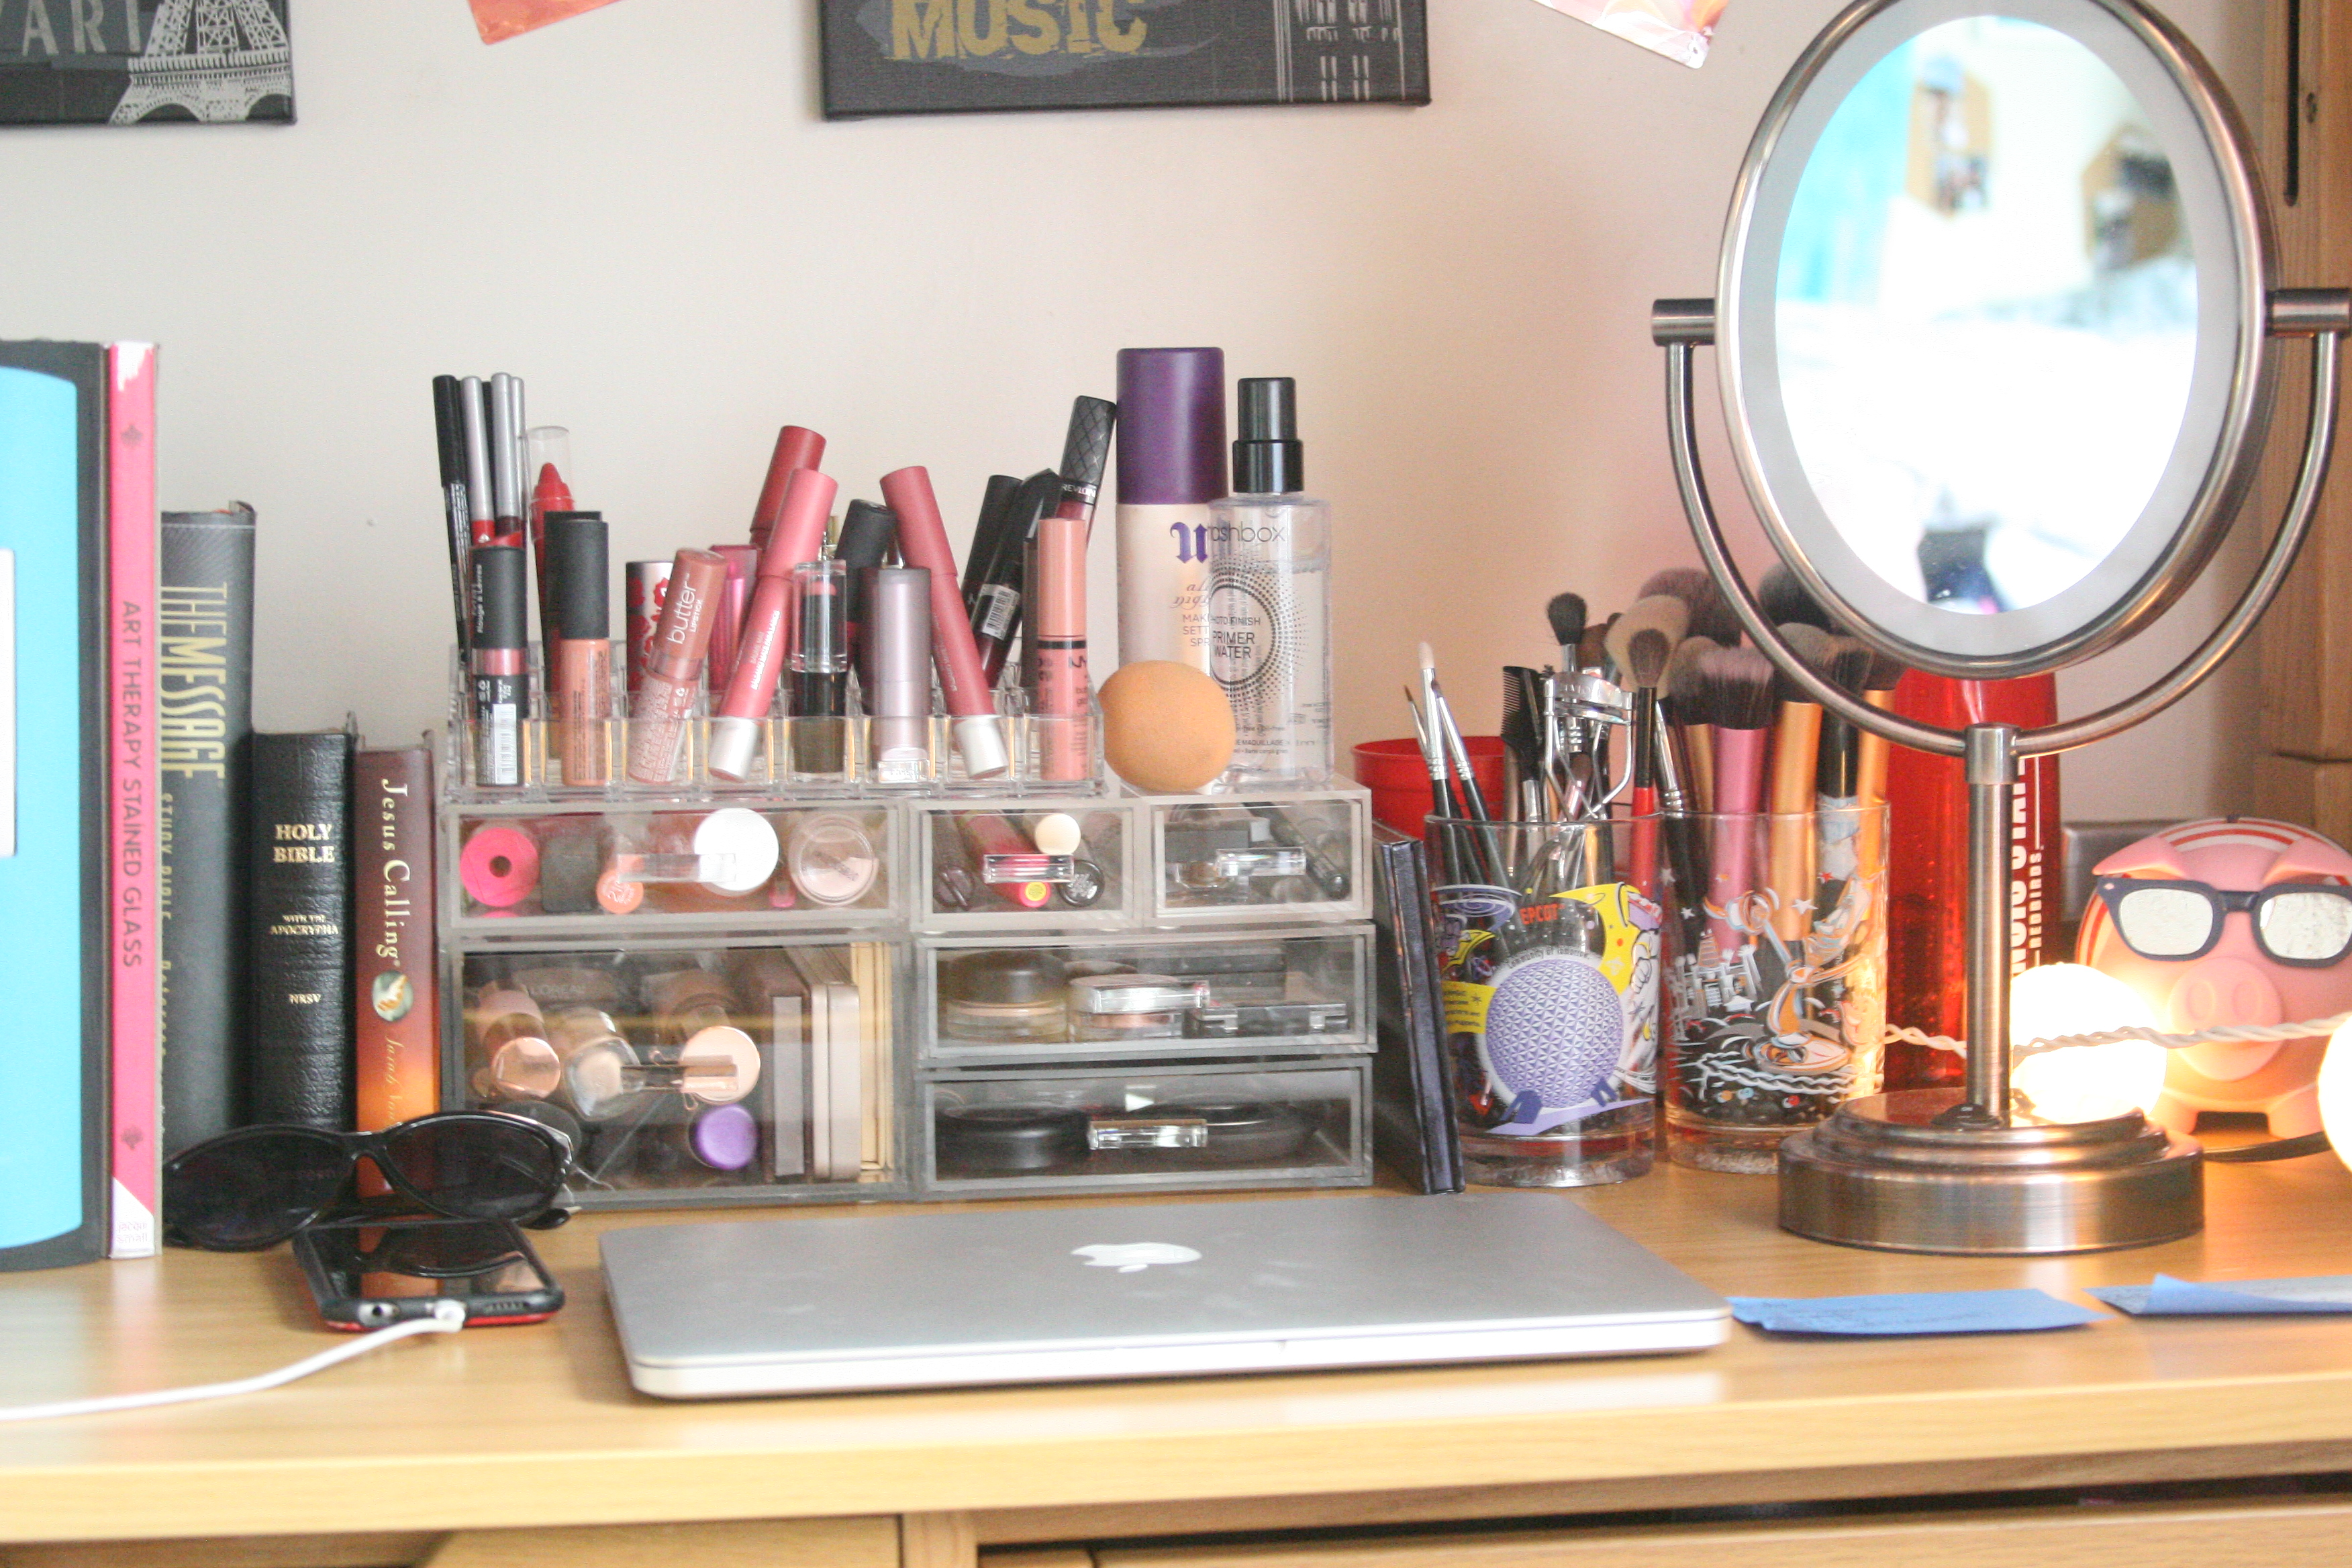 And Obviously The Most Important Part The Makeup Collection I Got These Acrylic Containers At The Container Store I Got To Customize My Own Little